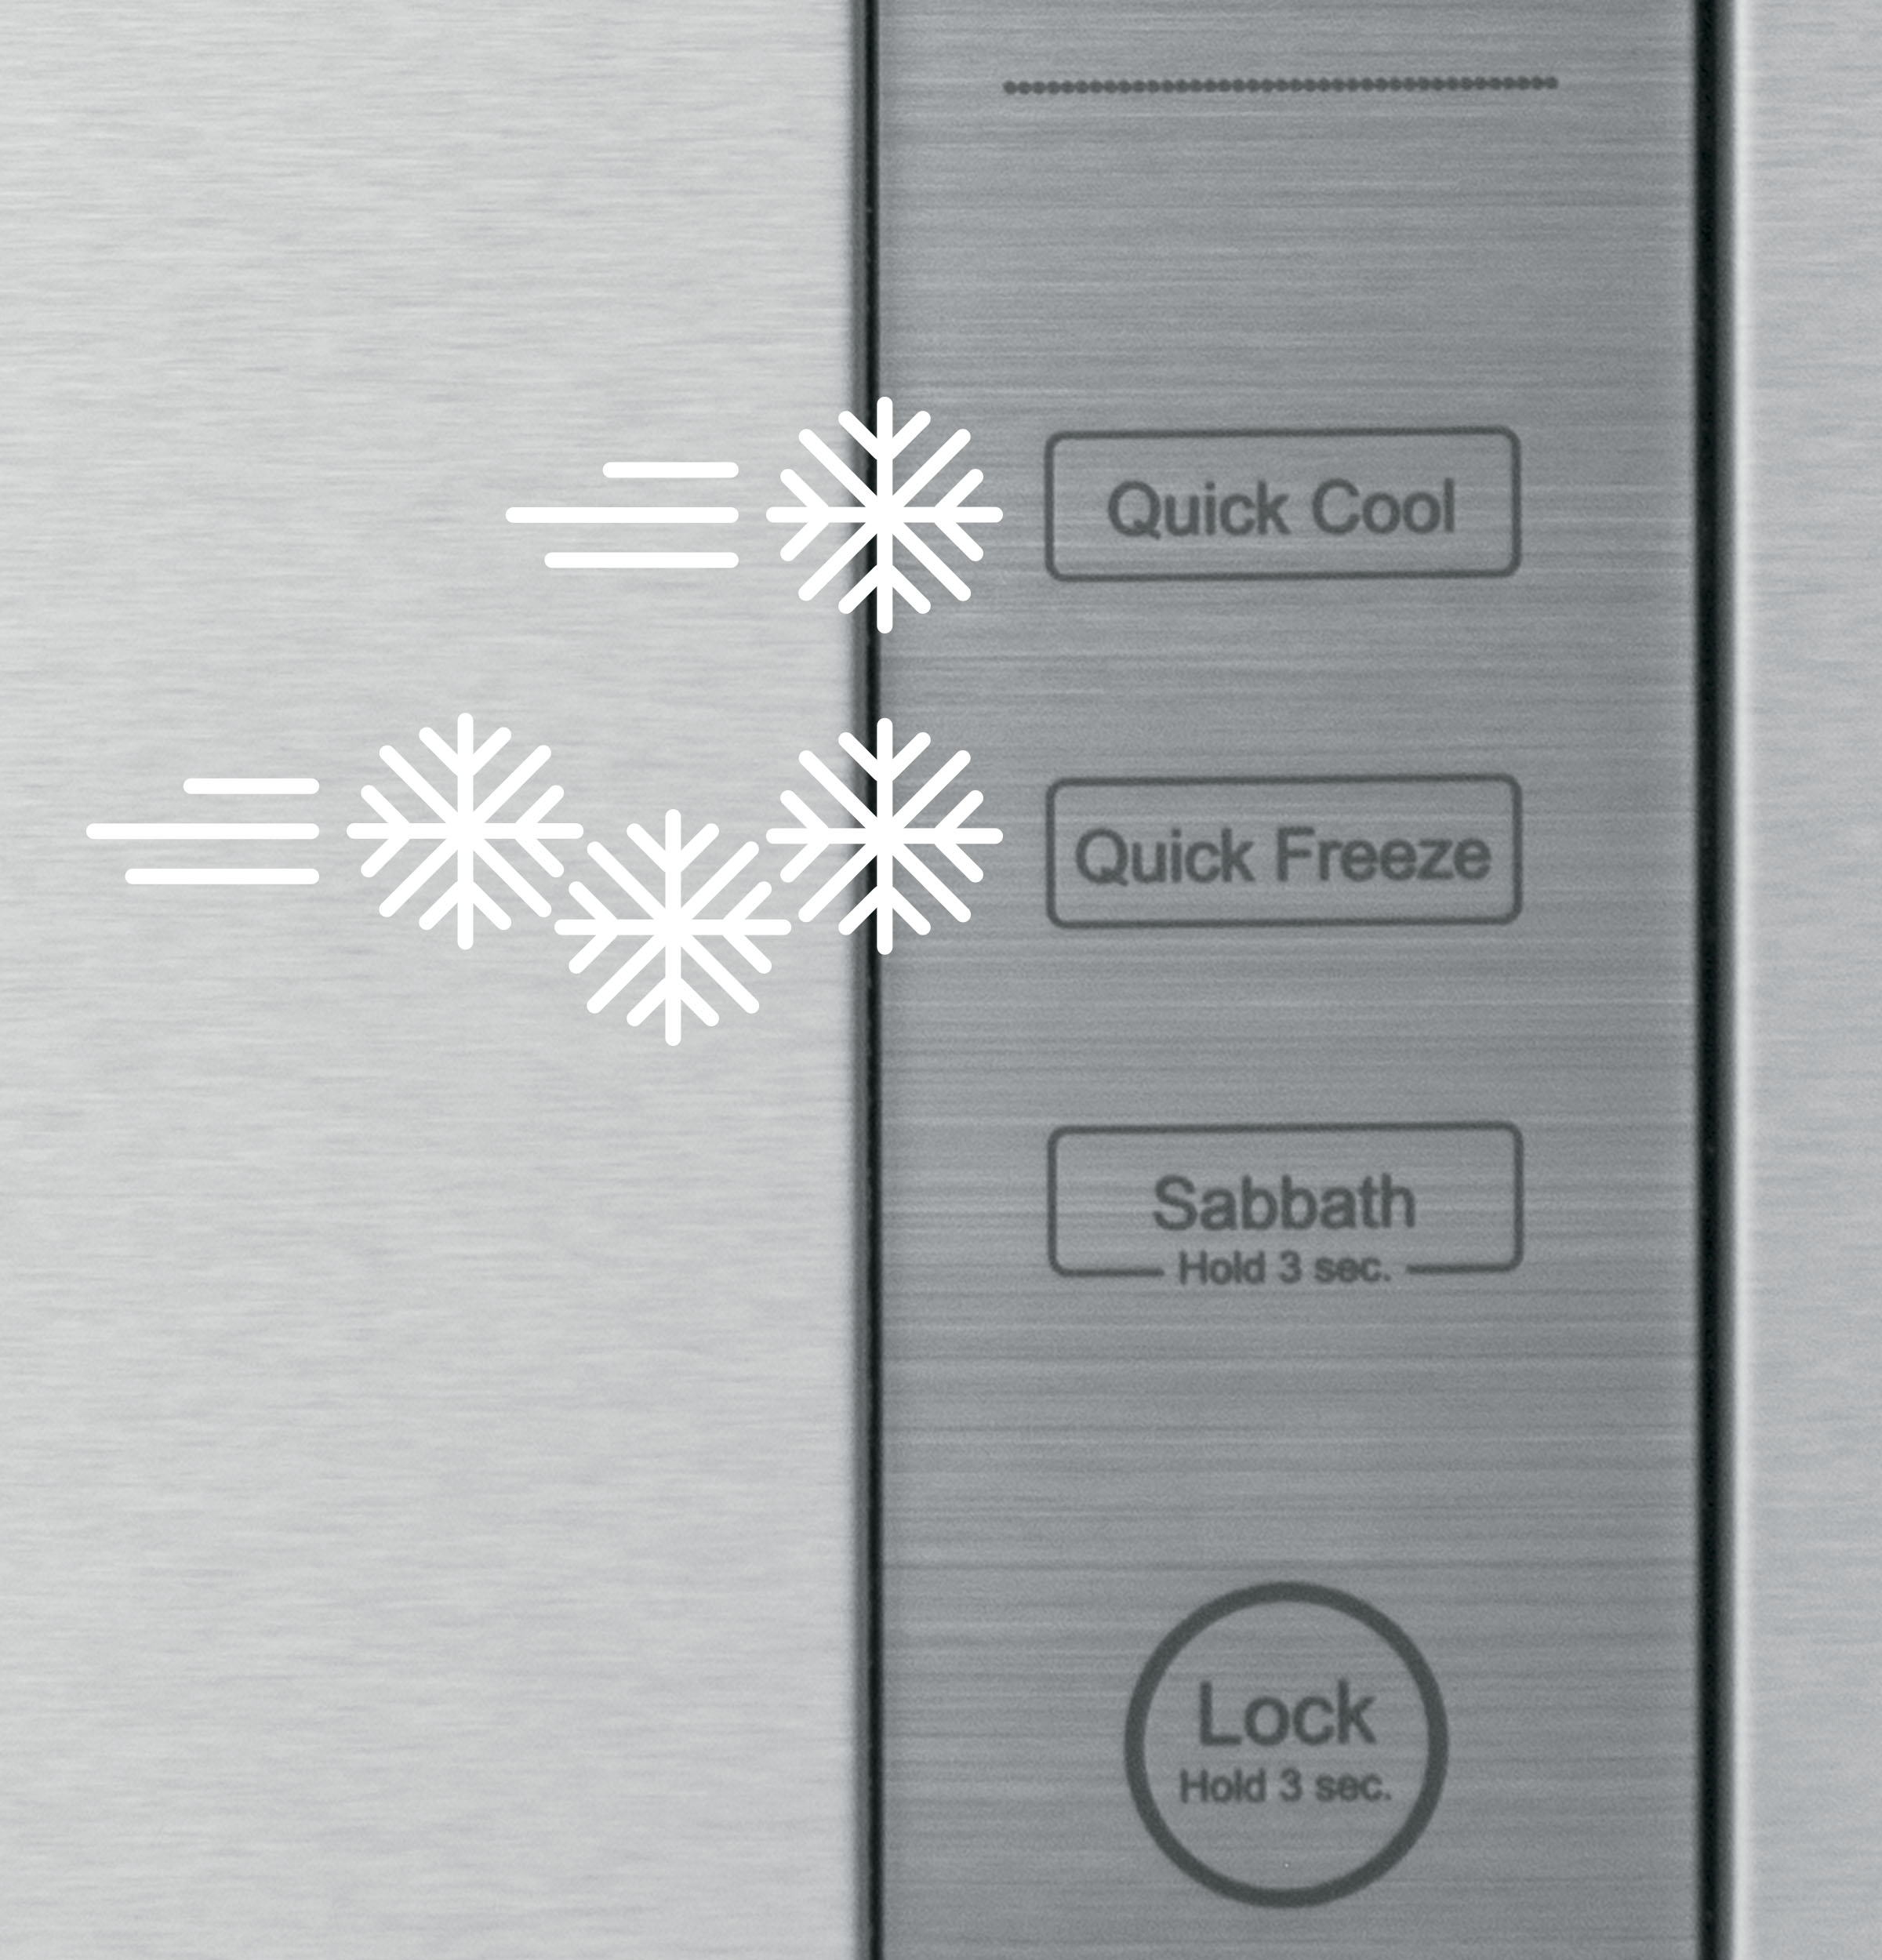 Model: HRF15N3AGS | Haier 15.3 Cu. Ft. French Door Refrigerator